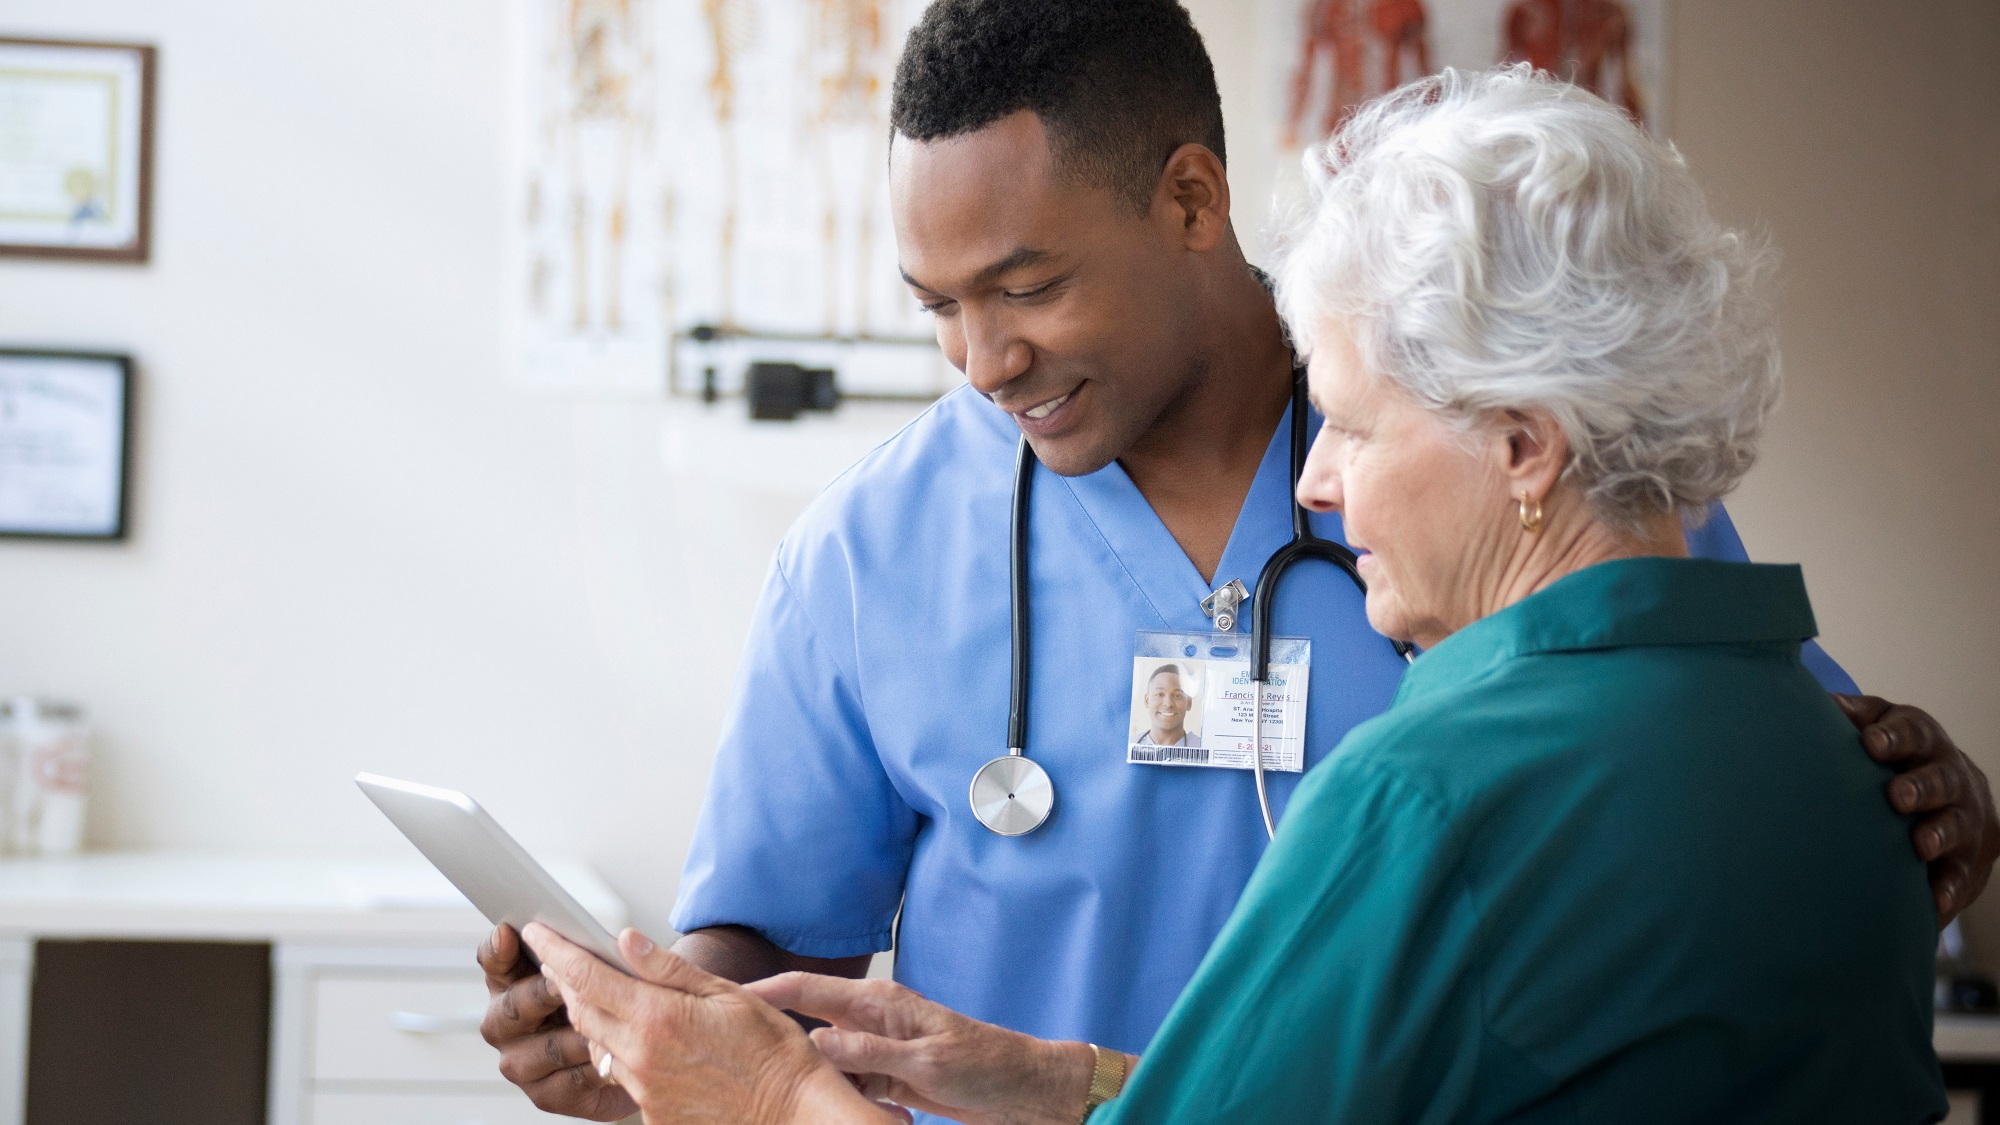 The impact of our eCare EPR in patient safety